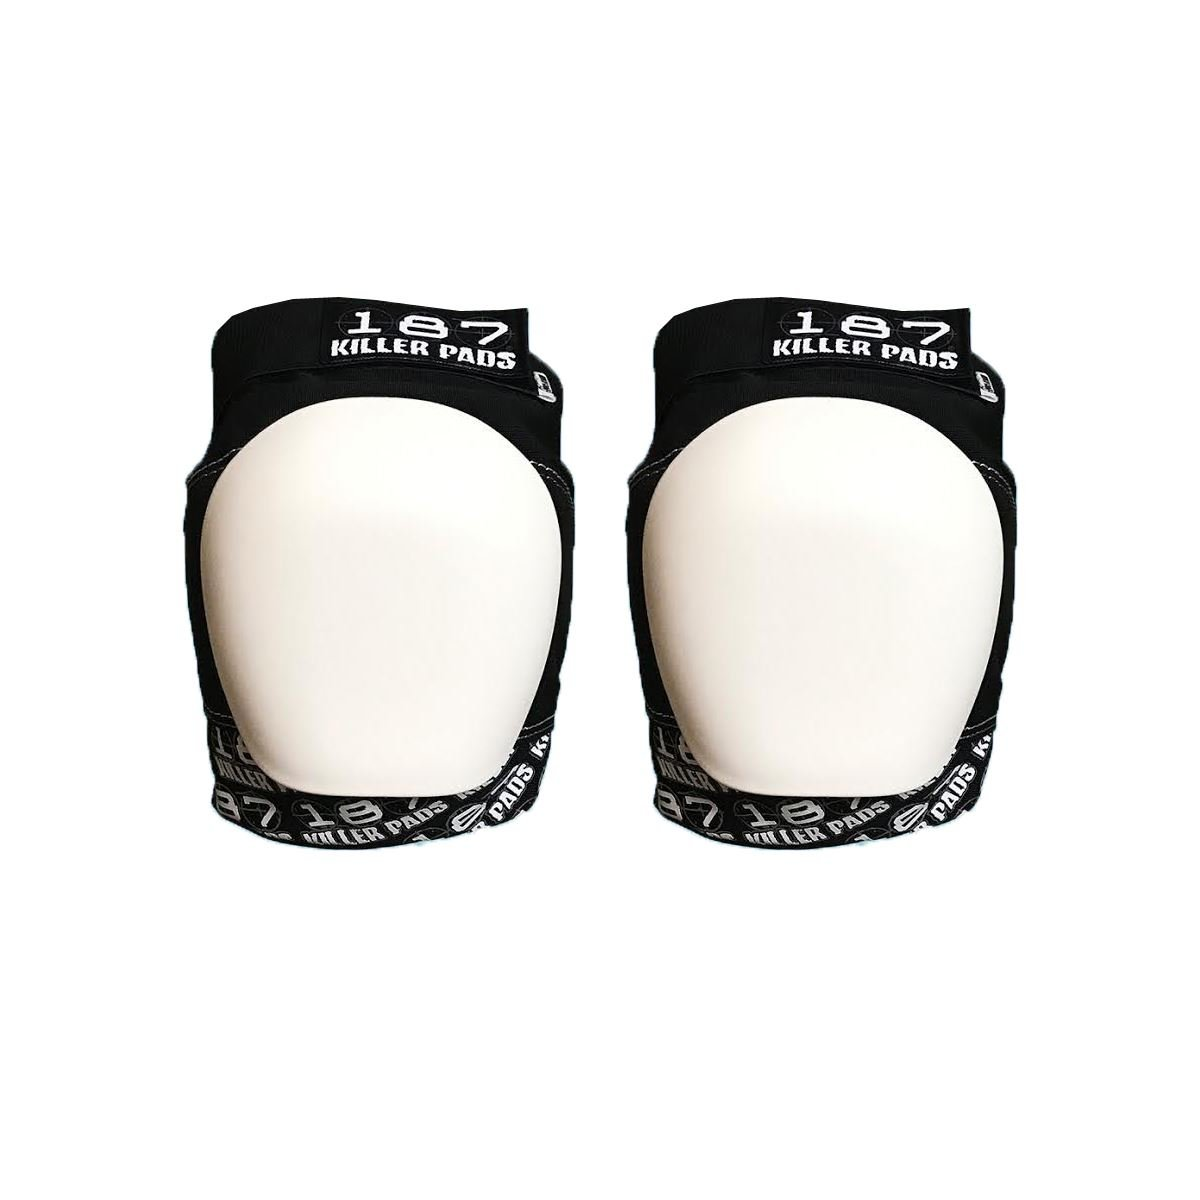 187 Killer Pro Knee Pads White Cap - White / Black - Large